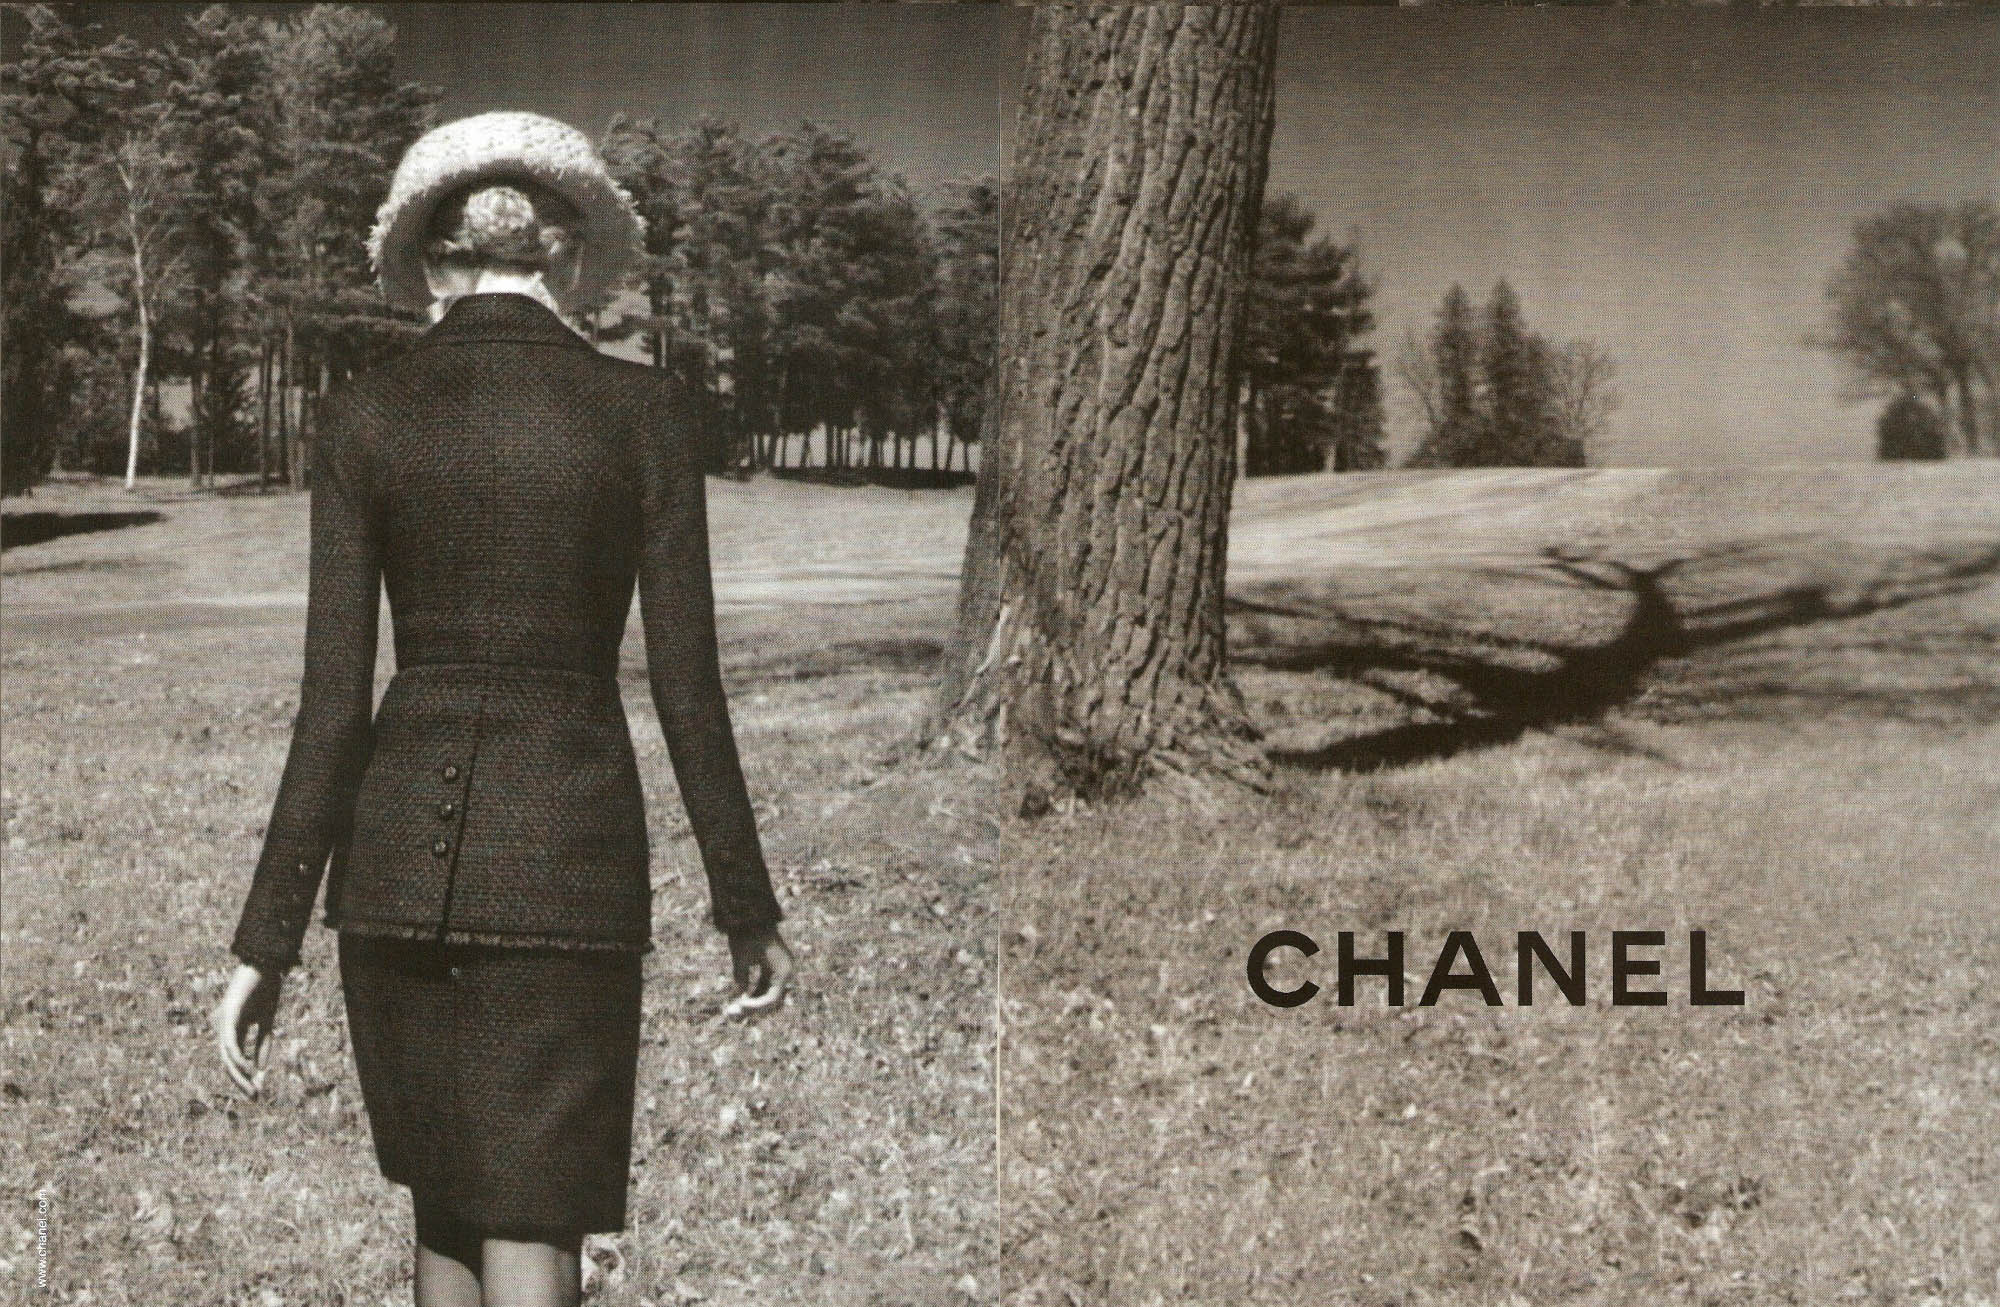 Chanel Wallpaper 2000x1307